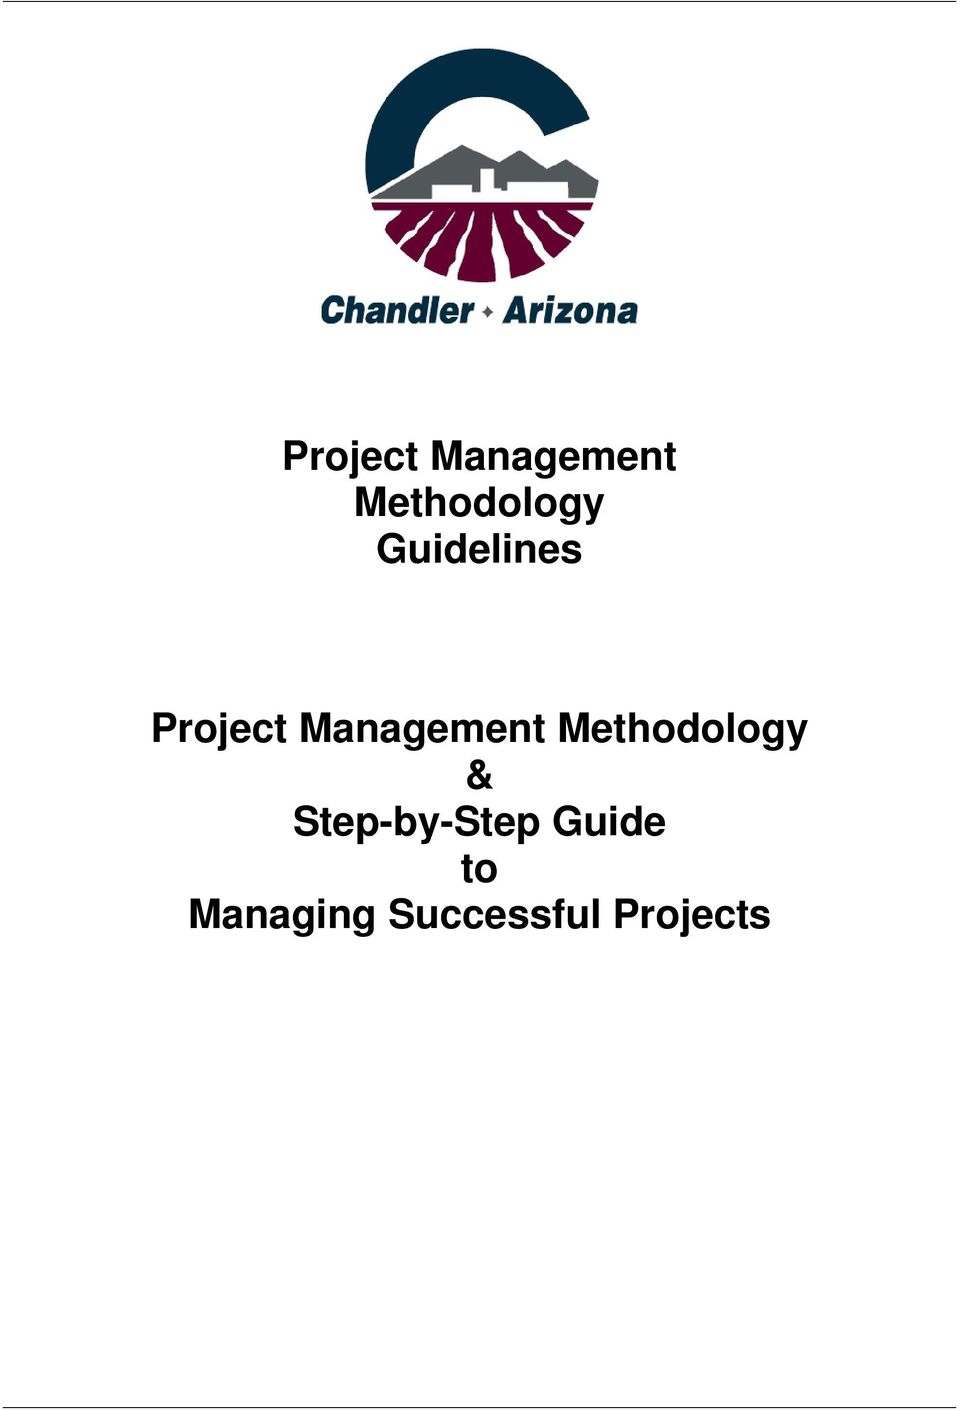 Guide to Managing Successful